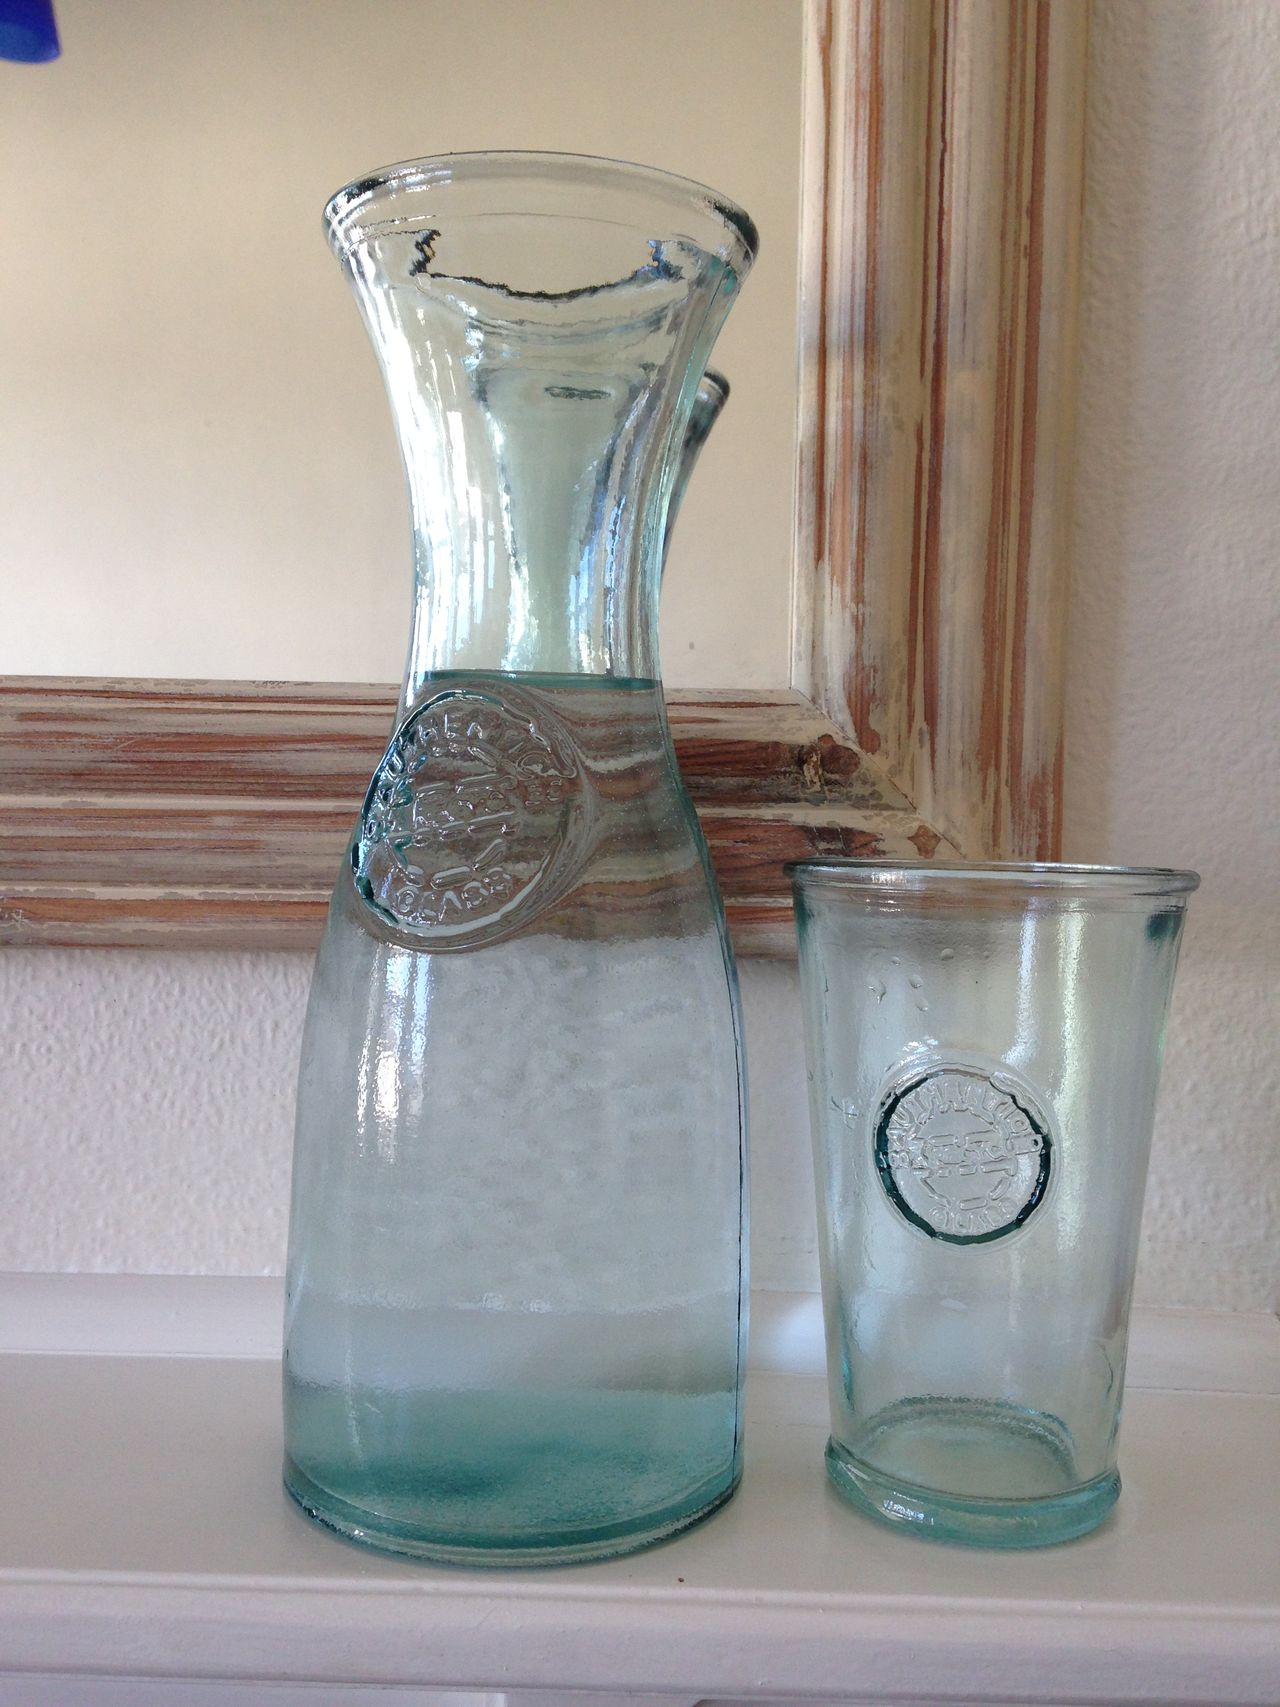 Close-up Day Freshness Glass Glass - Material Indoors  Jar No People Recycled Glass San Miguel Recycled Glass Table Water